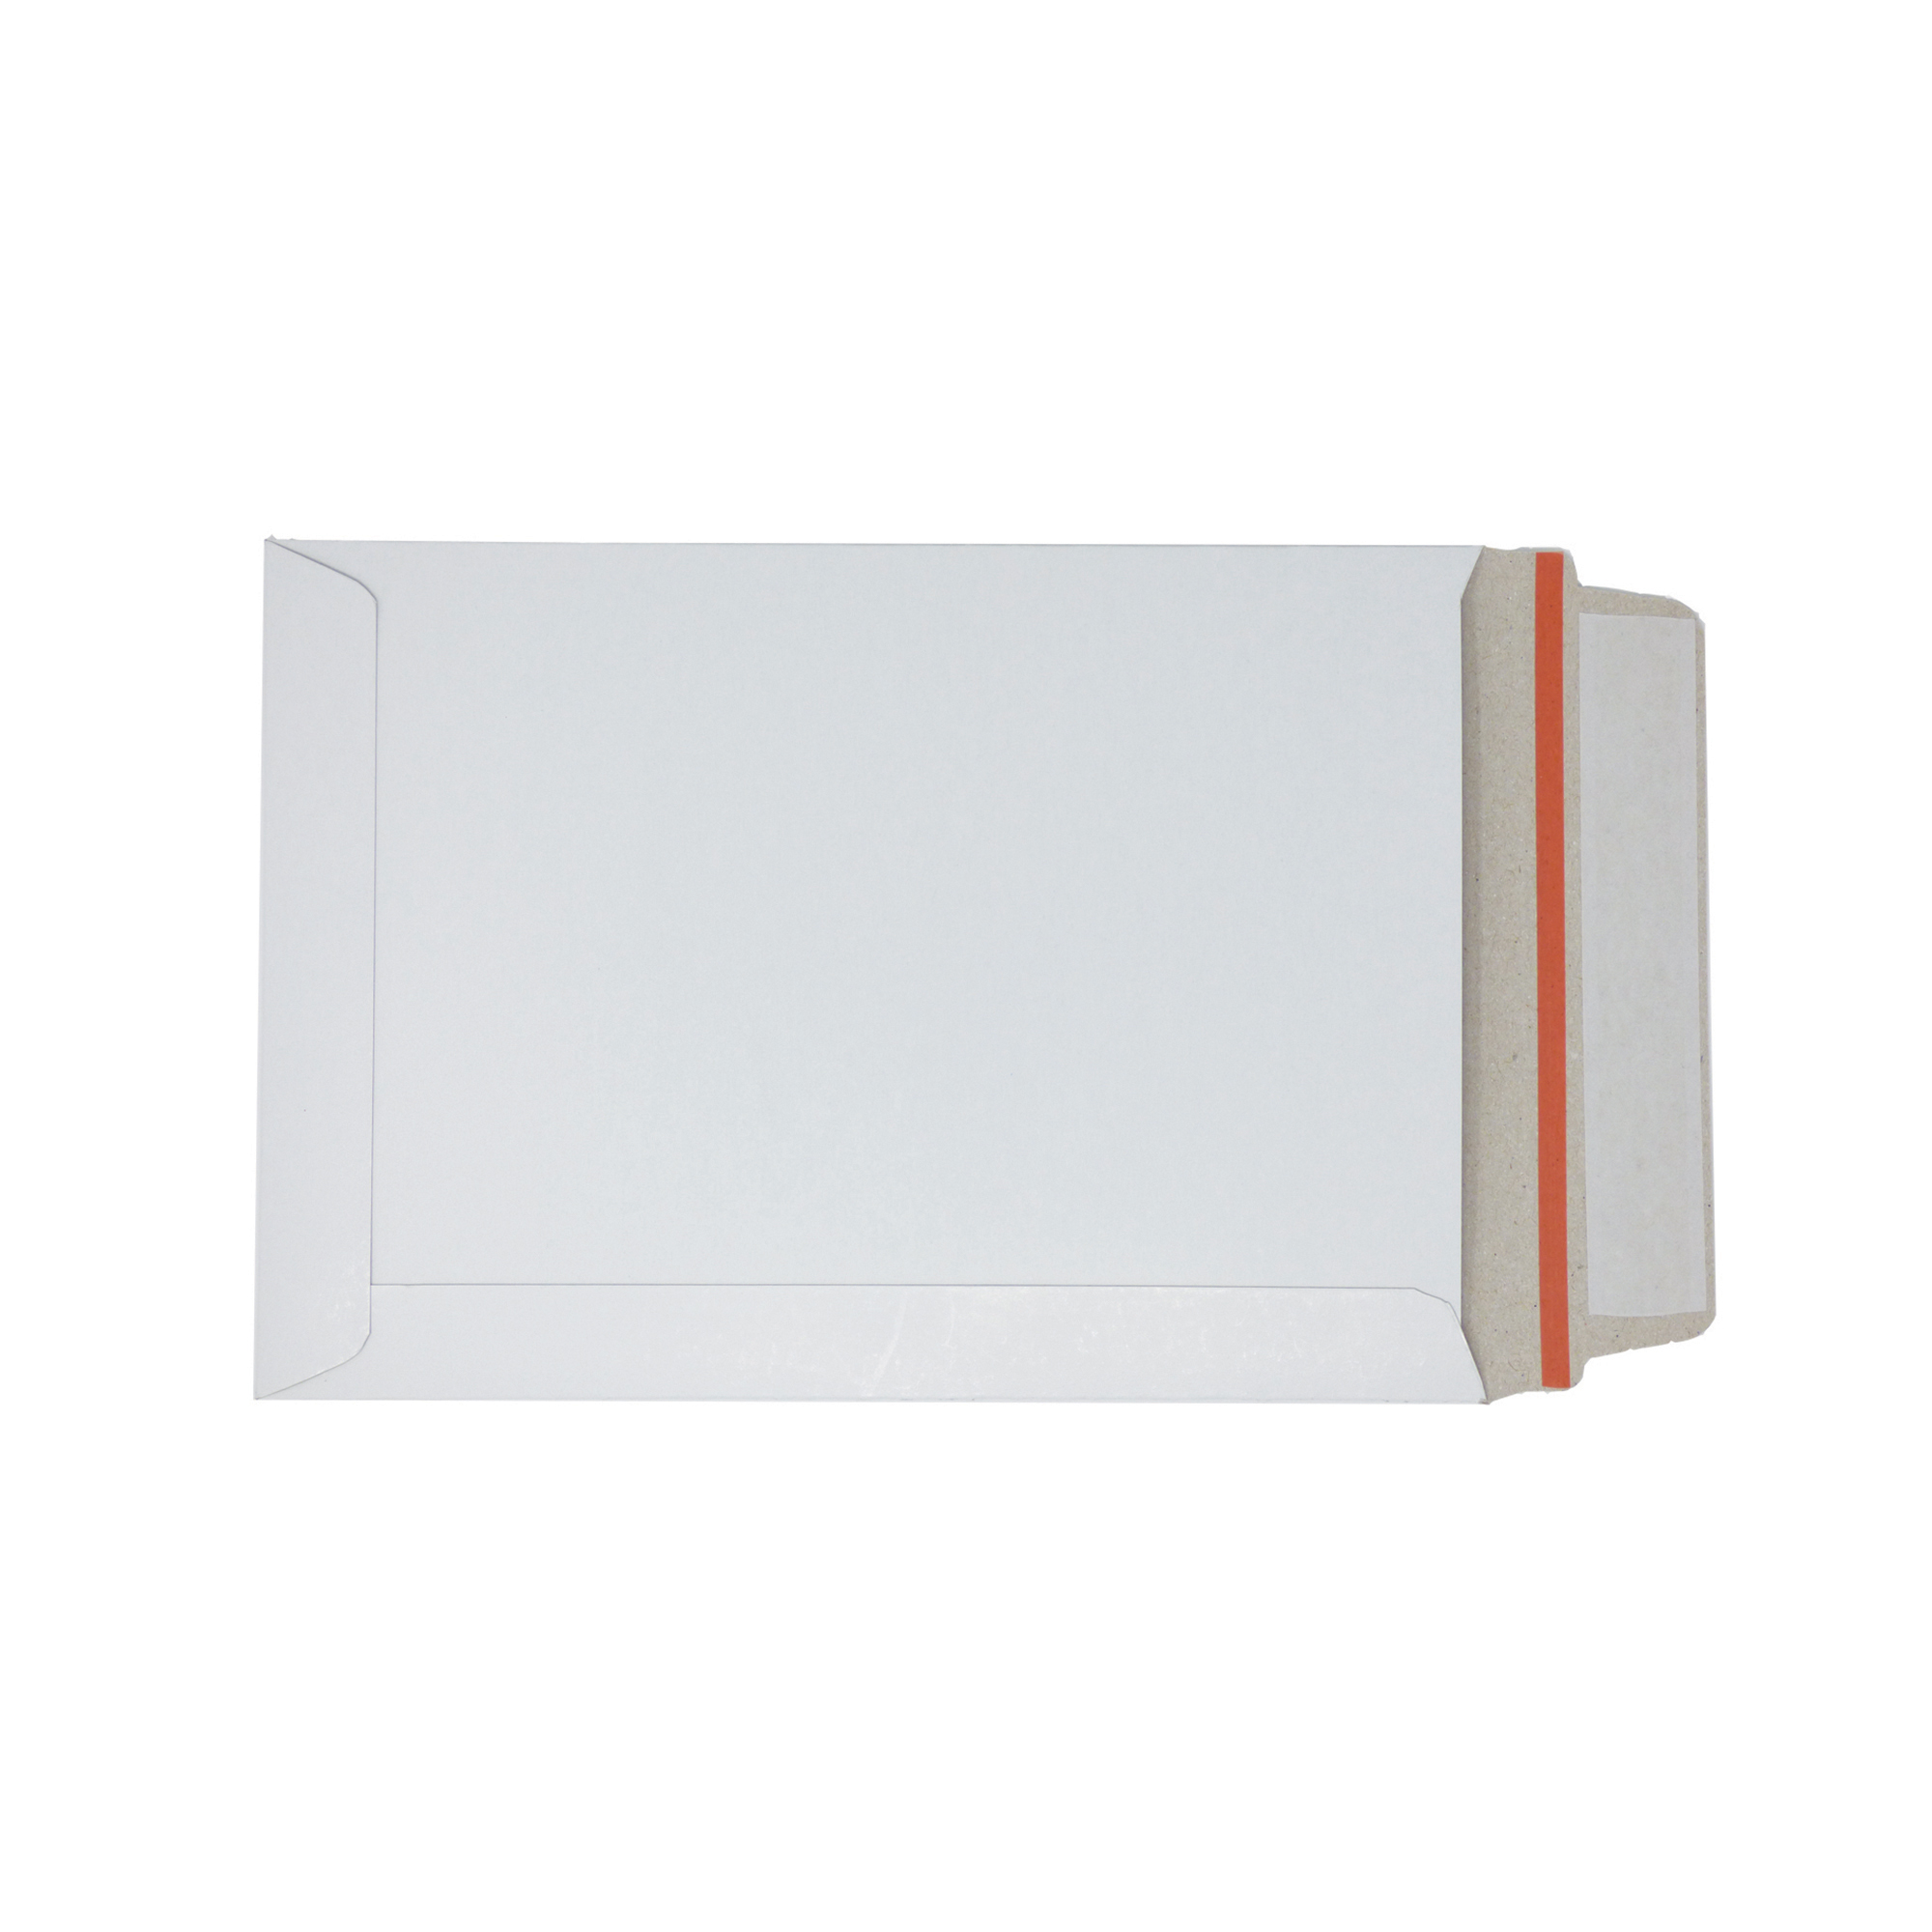 Specialty envelopes White Board Envelopes Peel & Seal C5+ 241x178mm White Ref AB10345 Pack 100